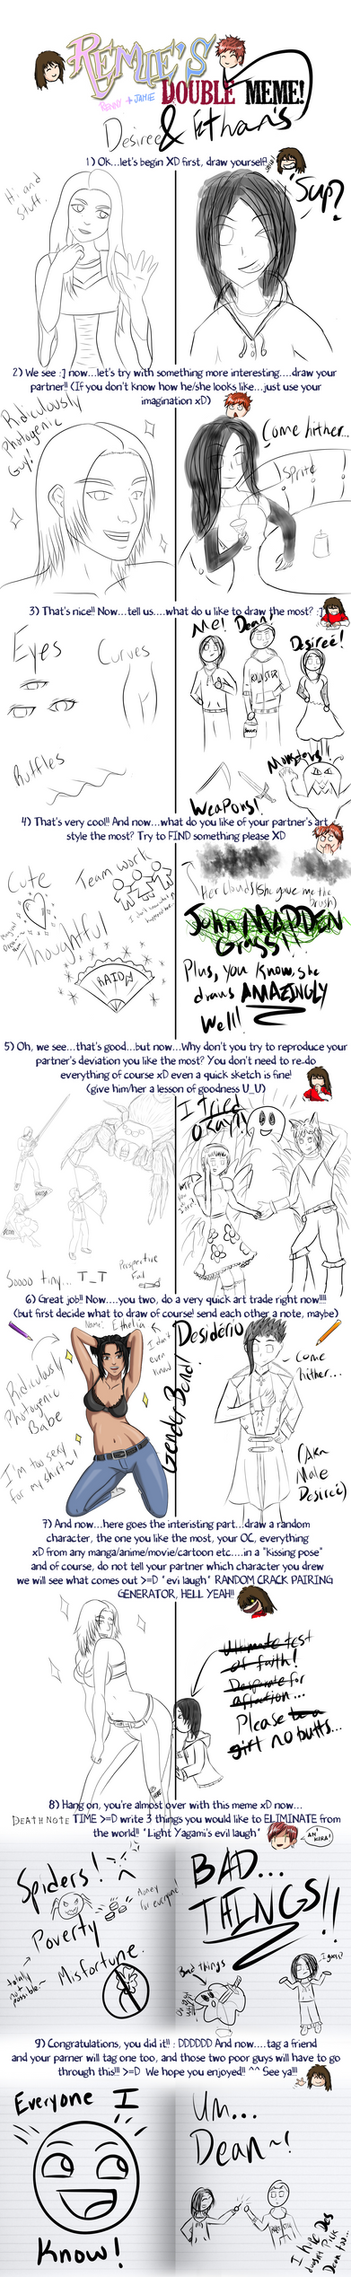 Scribbles Doublememe___desiree__and_ethan_by_geddonvee-d68axv6